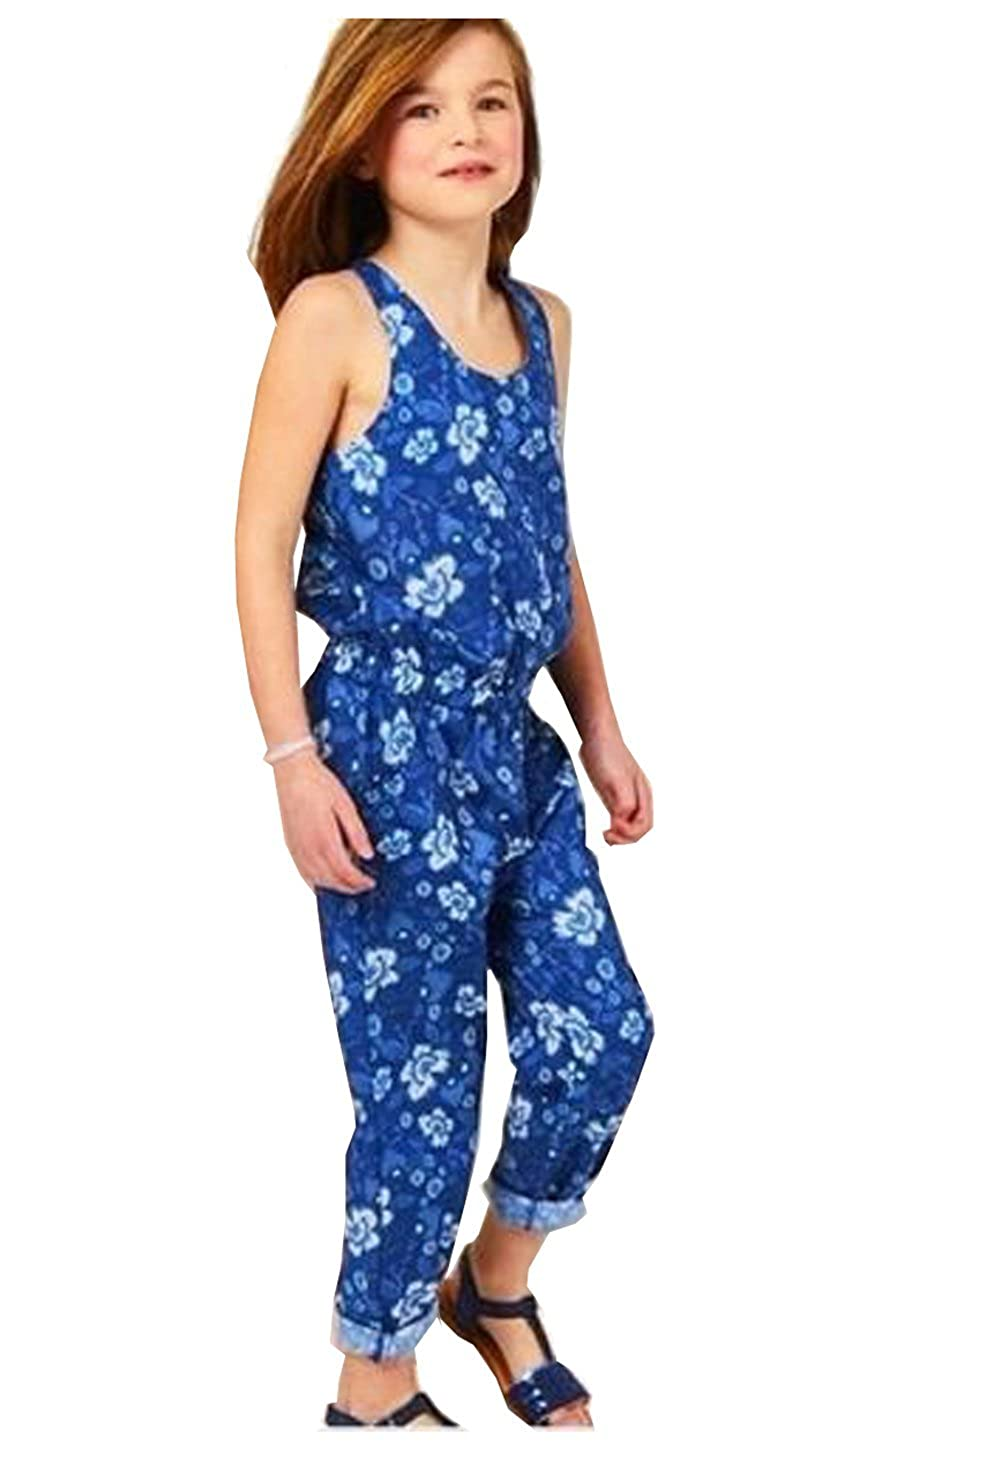 Girls Blue Floral Fashion Jumpsuit Romper One Piece Outerwear